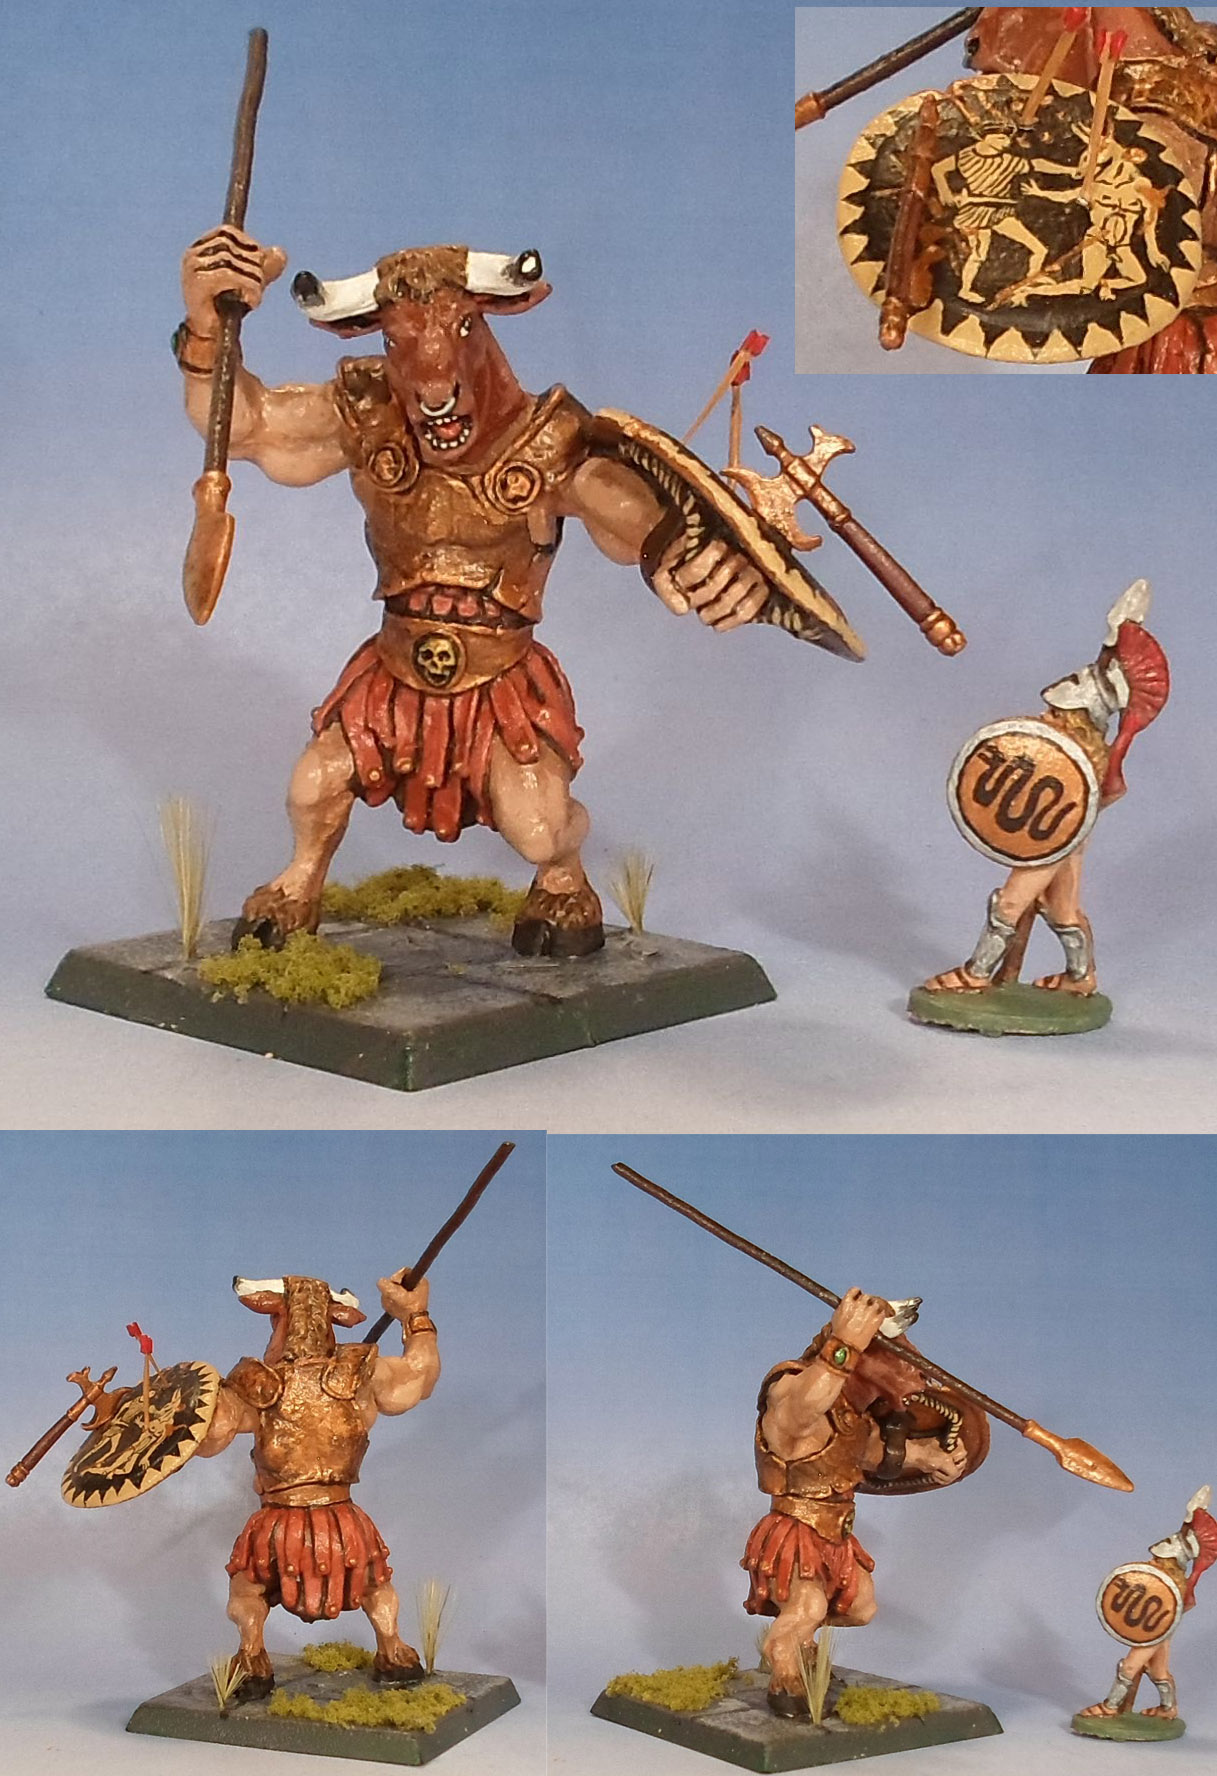 CoolMiniOrNot - Minotaur with Spear and Shield by Hawthorn67